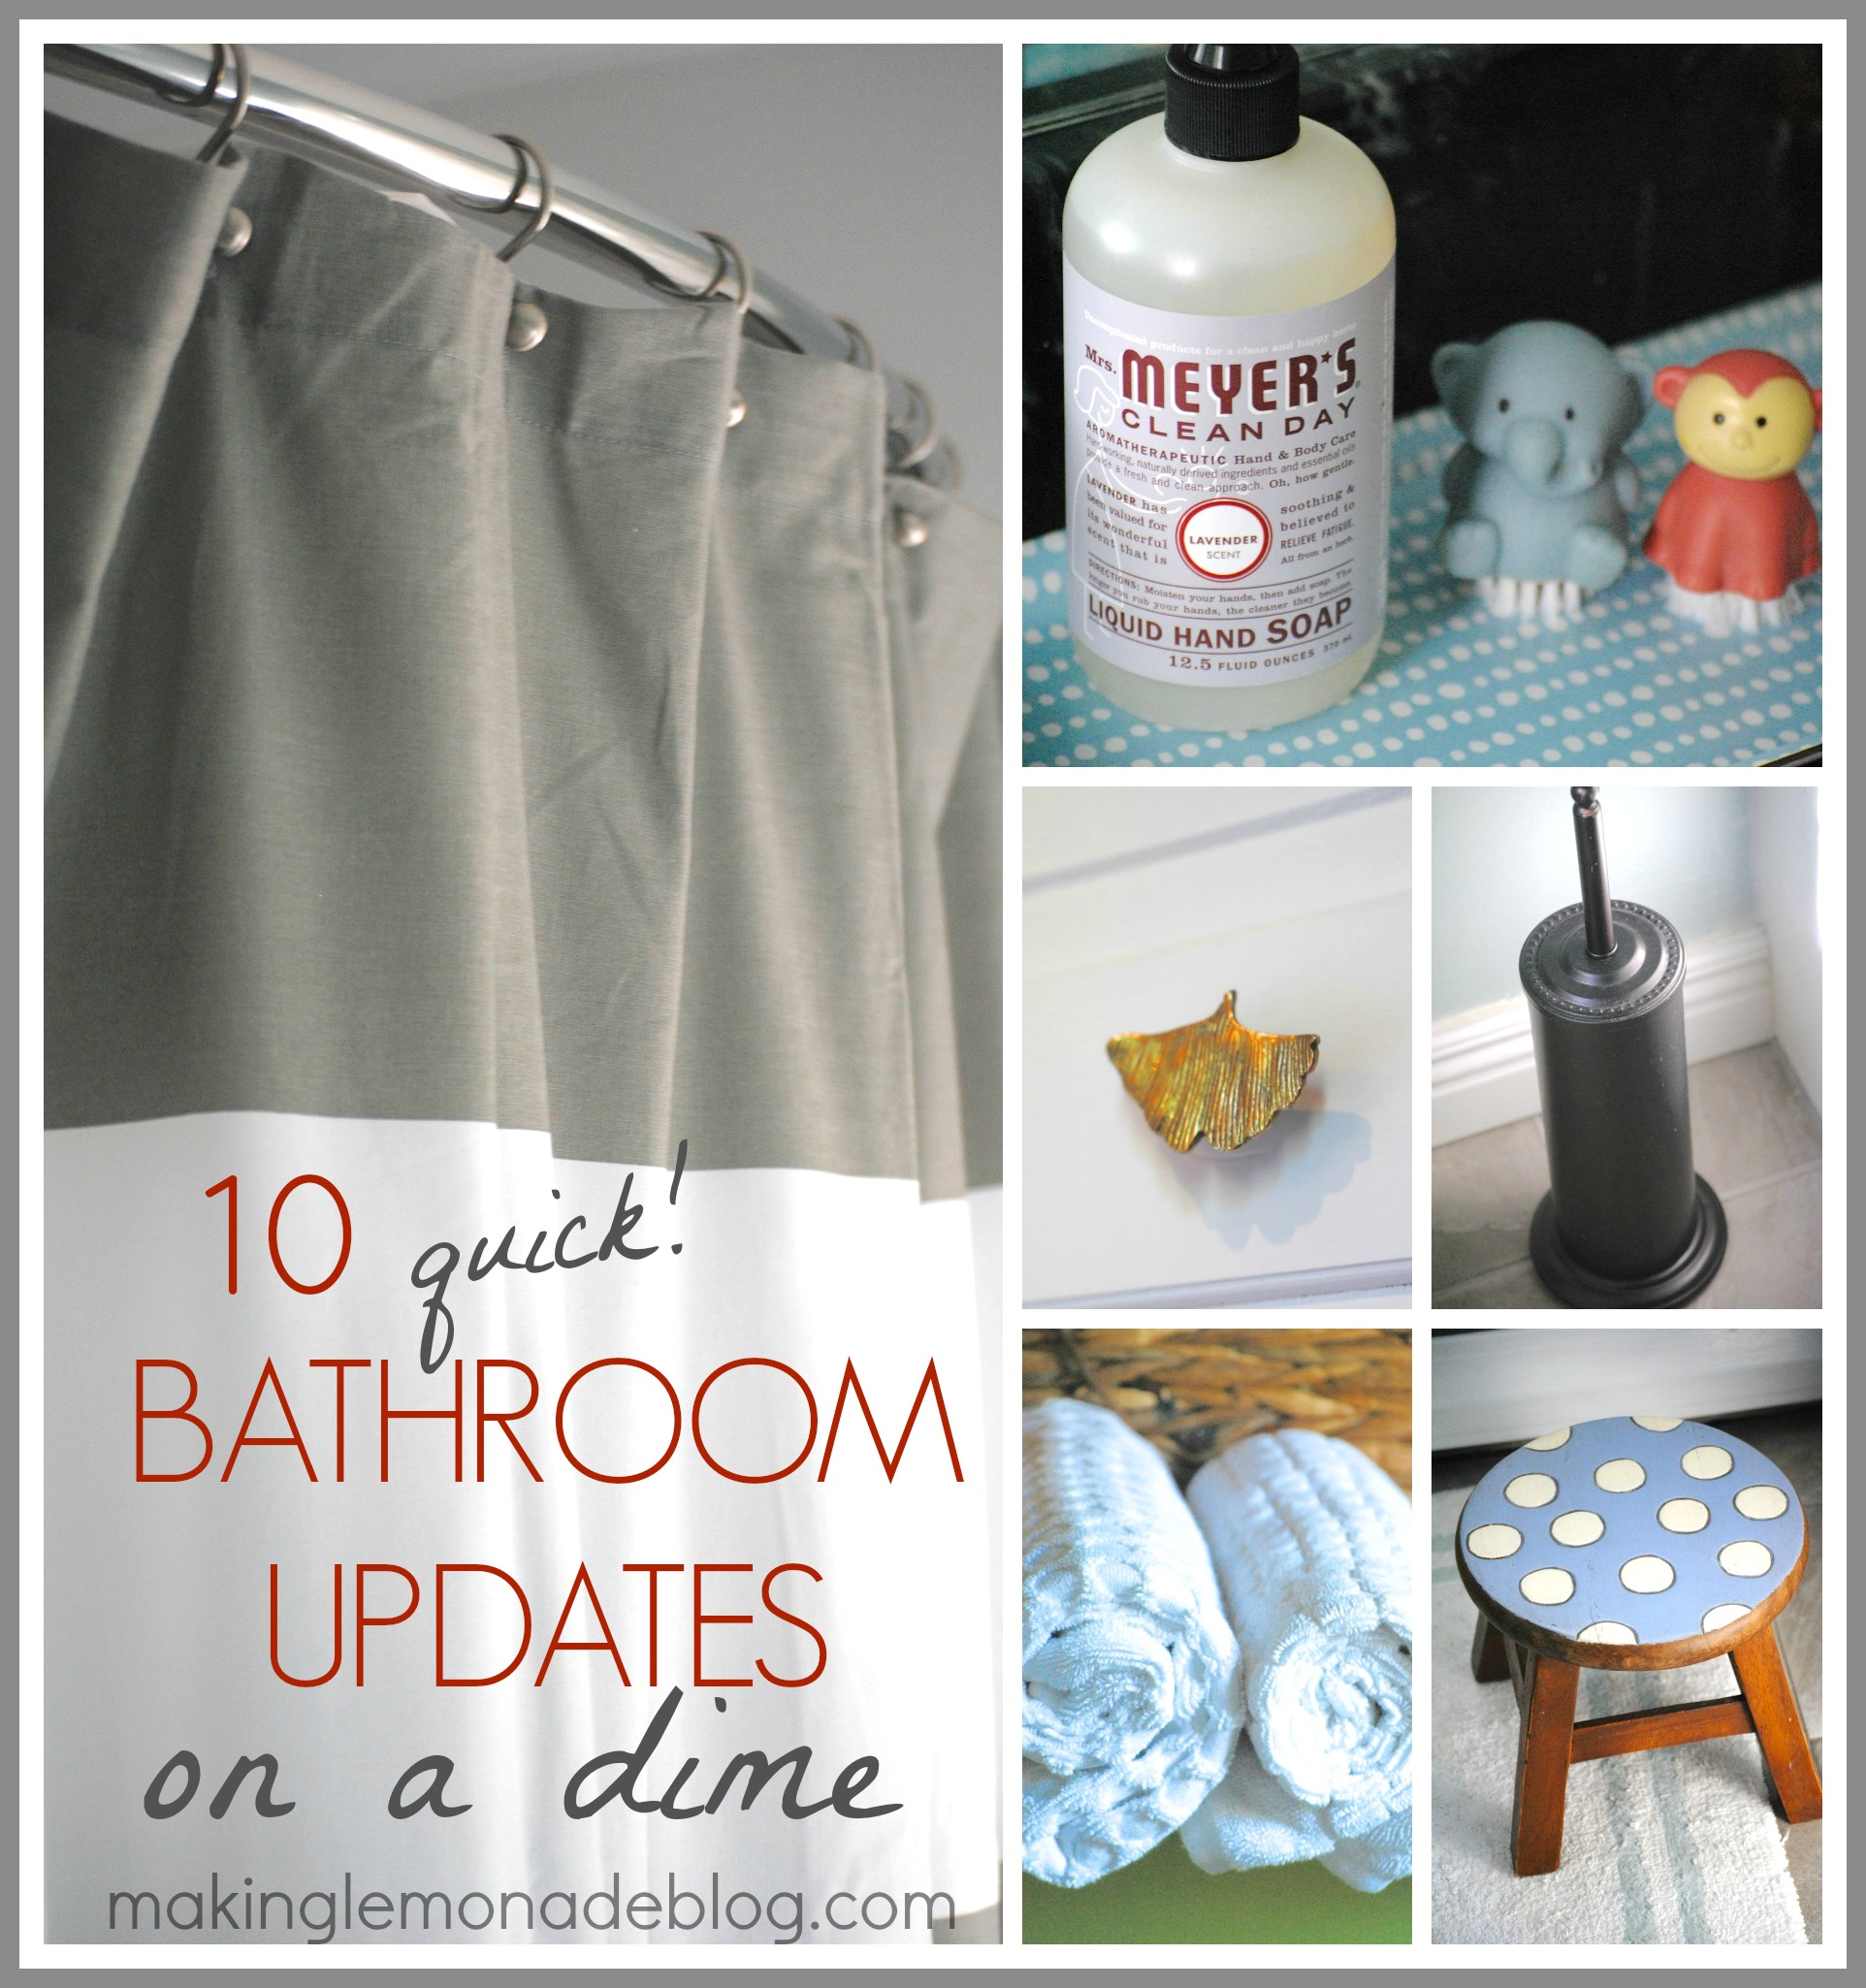 Easy Bathroom Updates on a Dime!